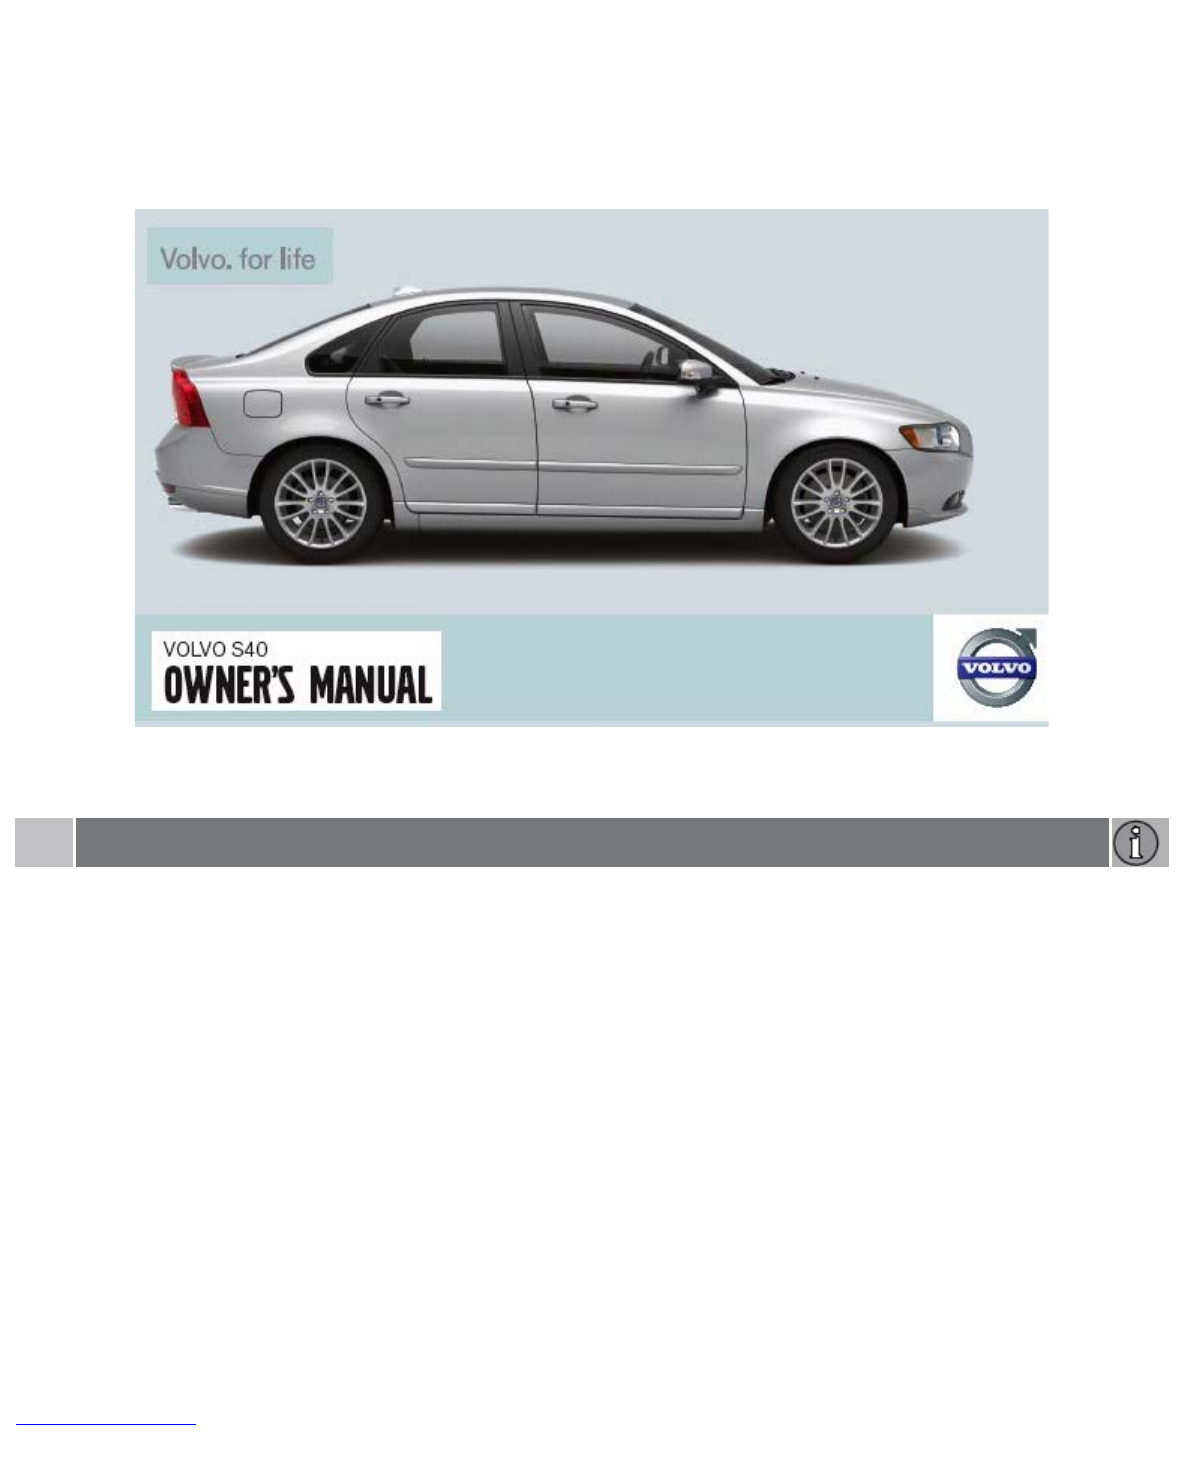 2008 Volvo S40 Owners Manual 2004 S60r Fuse Box Pdf Rh Manuals Co Cars S60